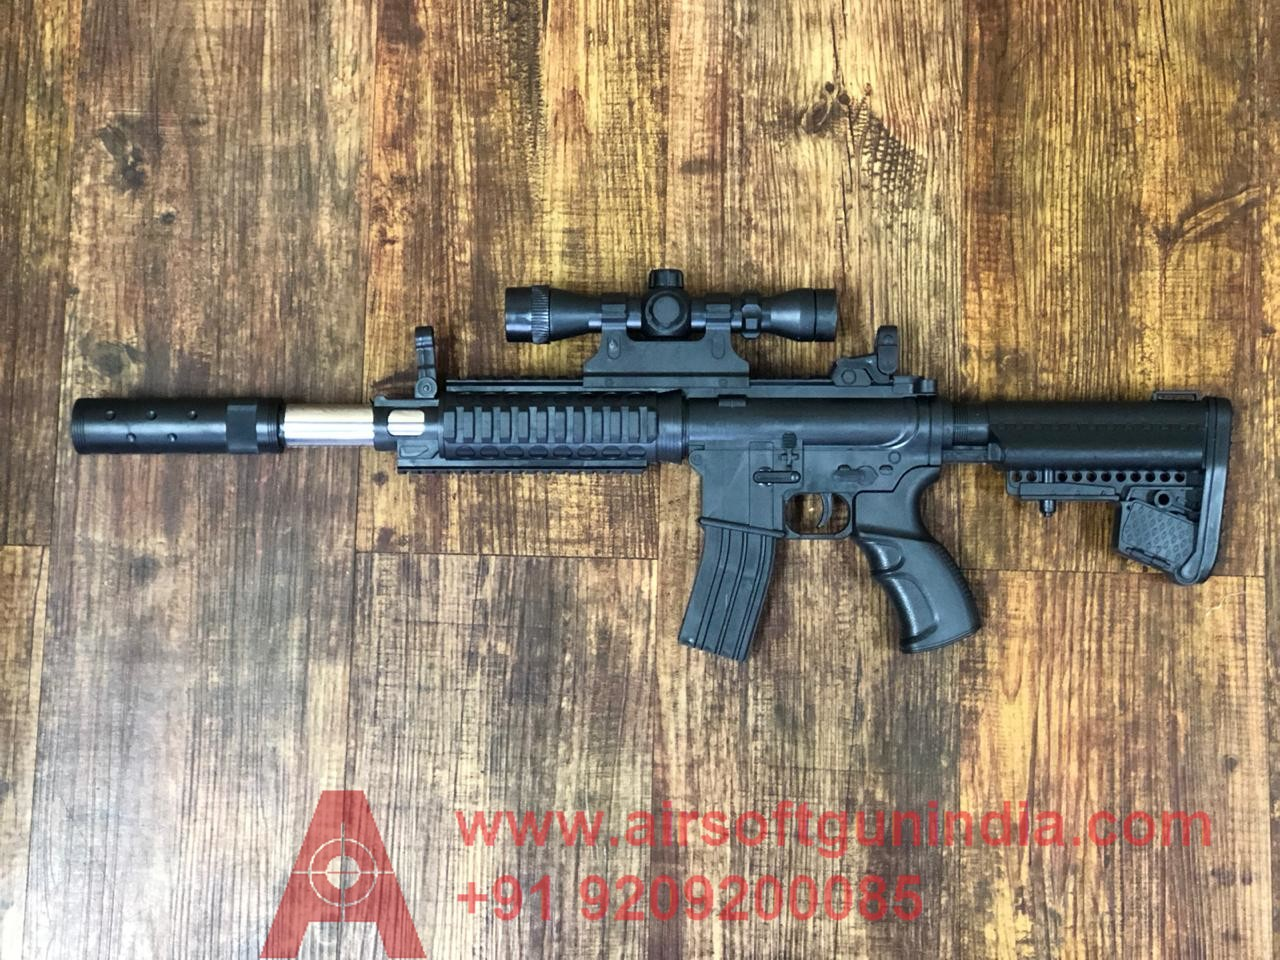 M16 Assault Rifle By Airsoft Gun India